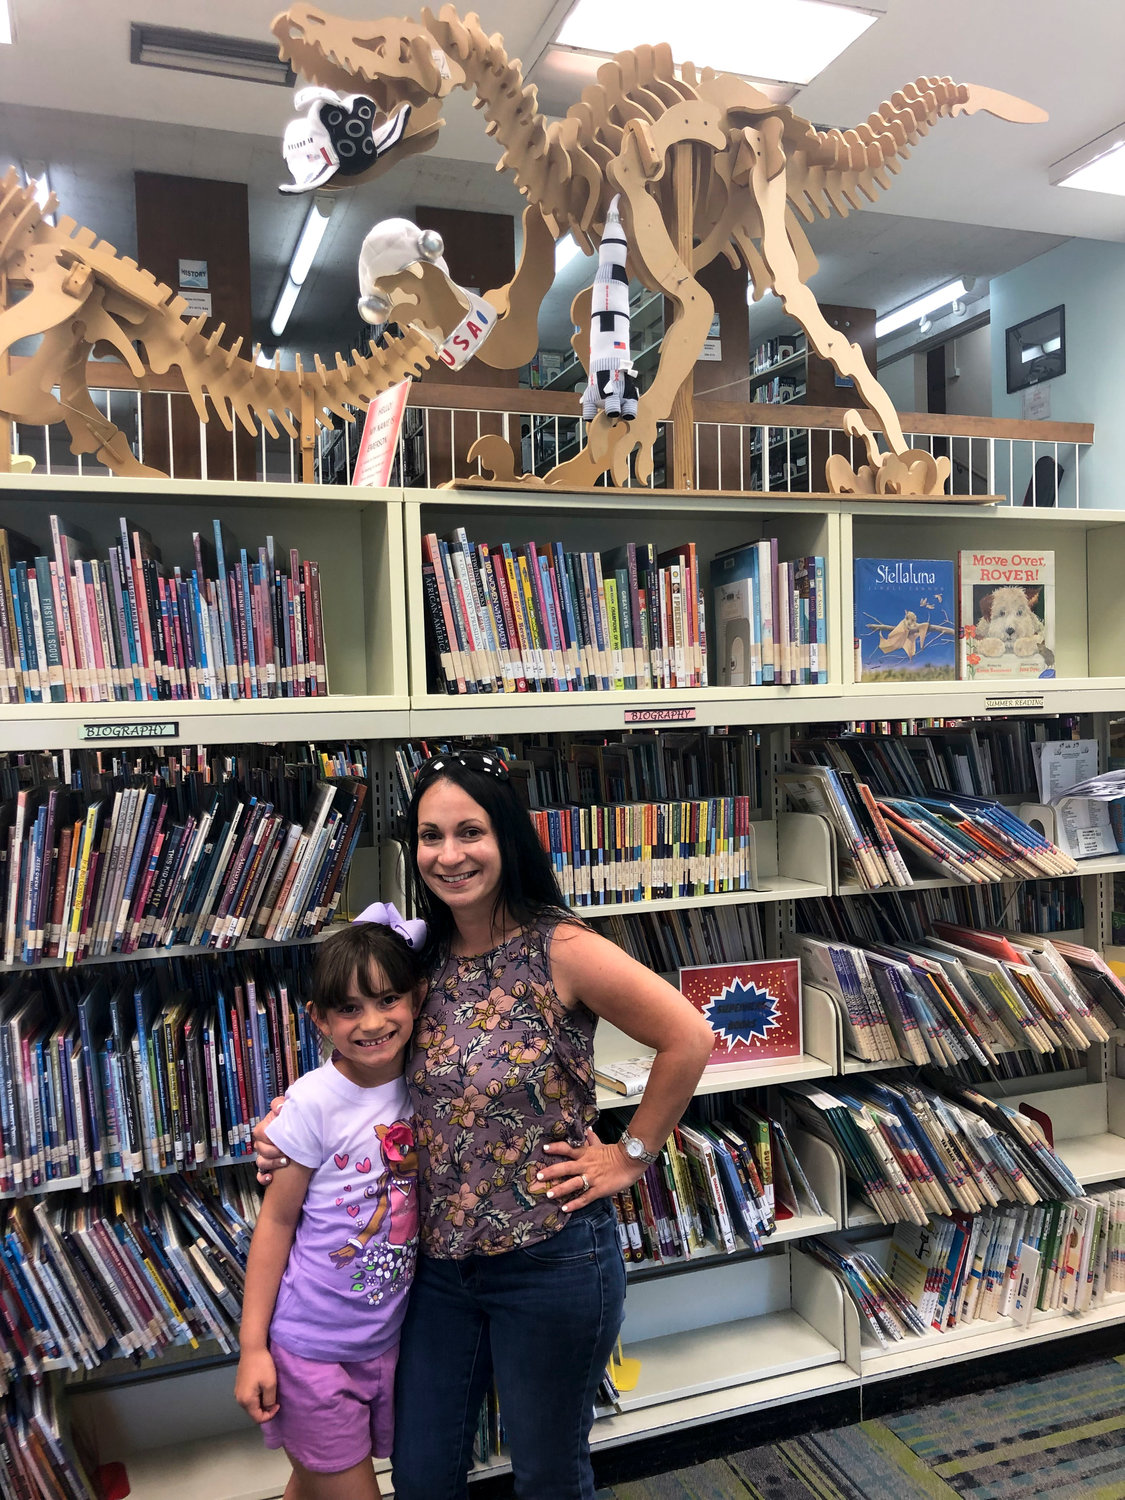 Six-year-old Ava Scopinich and her mother, Danielle, were among the first in the county to finish the Library Tour Challenge.